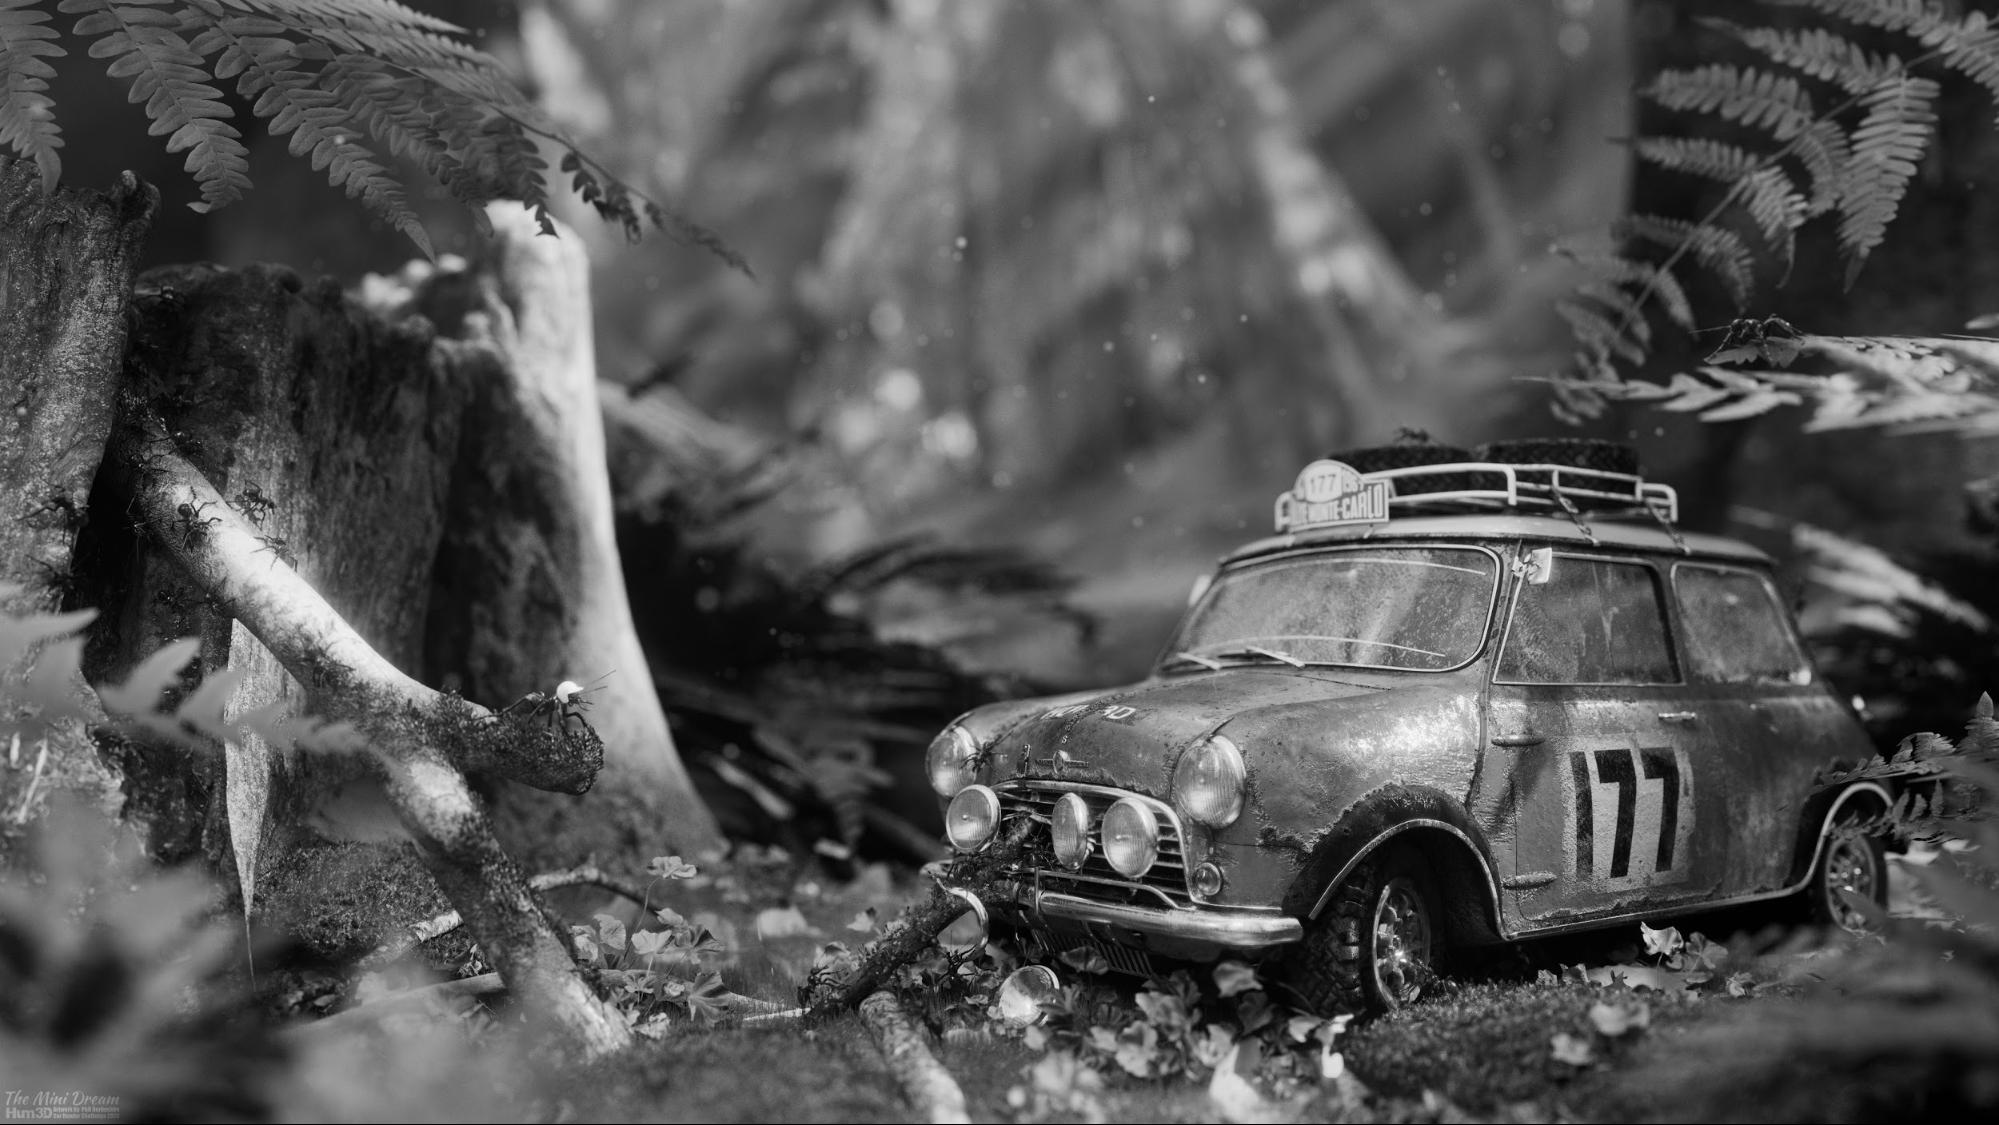 3D Artwork The Mini Dream Created by Phil Derbyshire